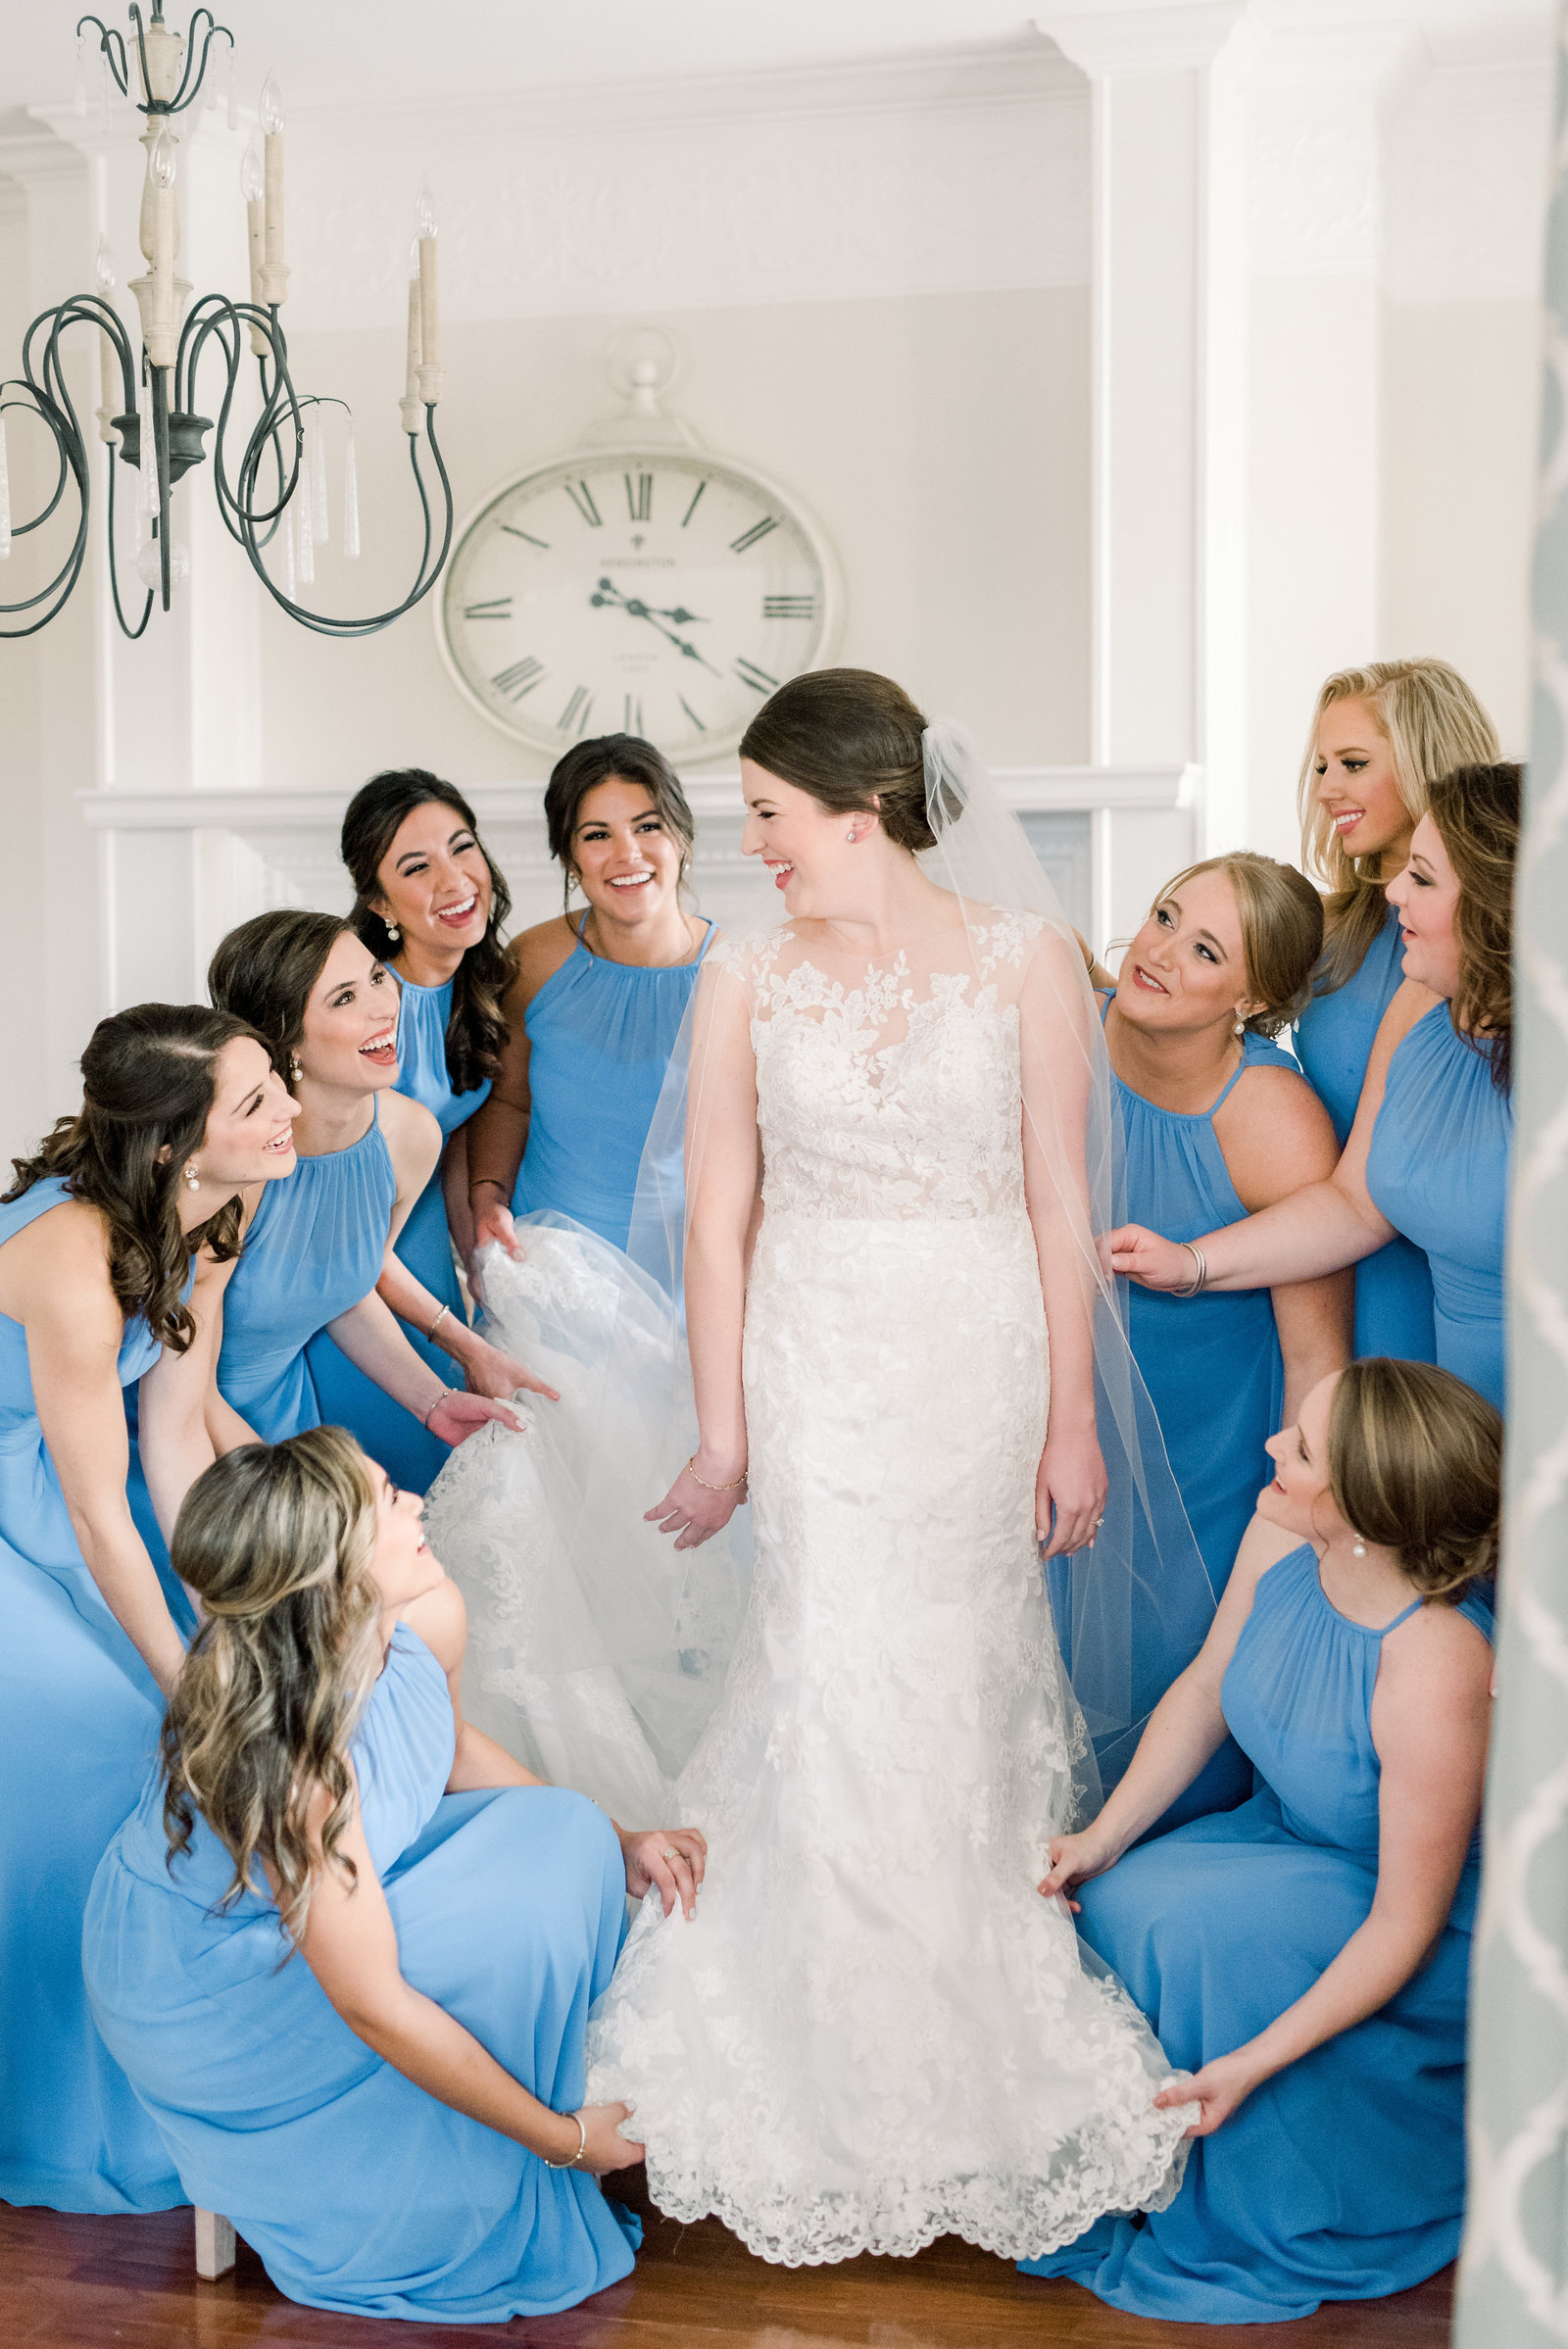 historic-post-office-hampton-virginia-wedding-southern-blue-bridesmaids-dresses-photo482